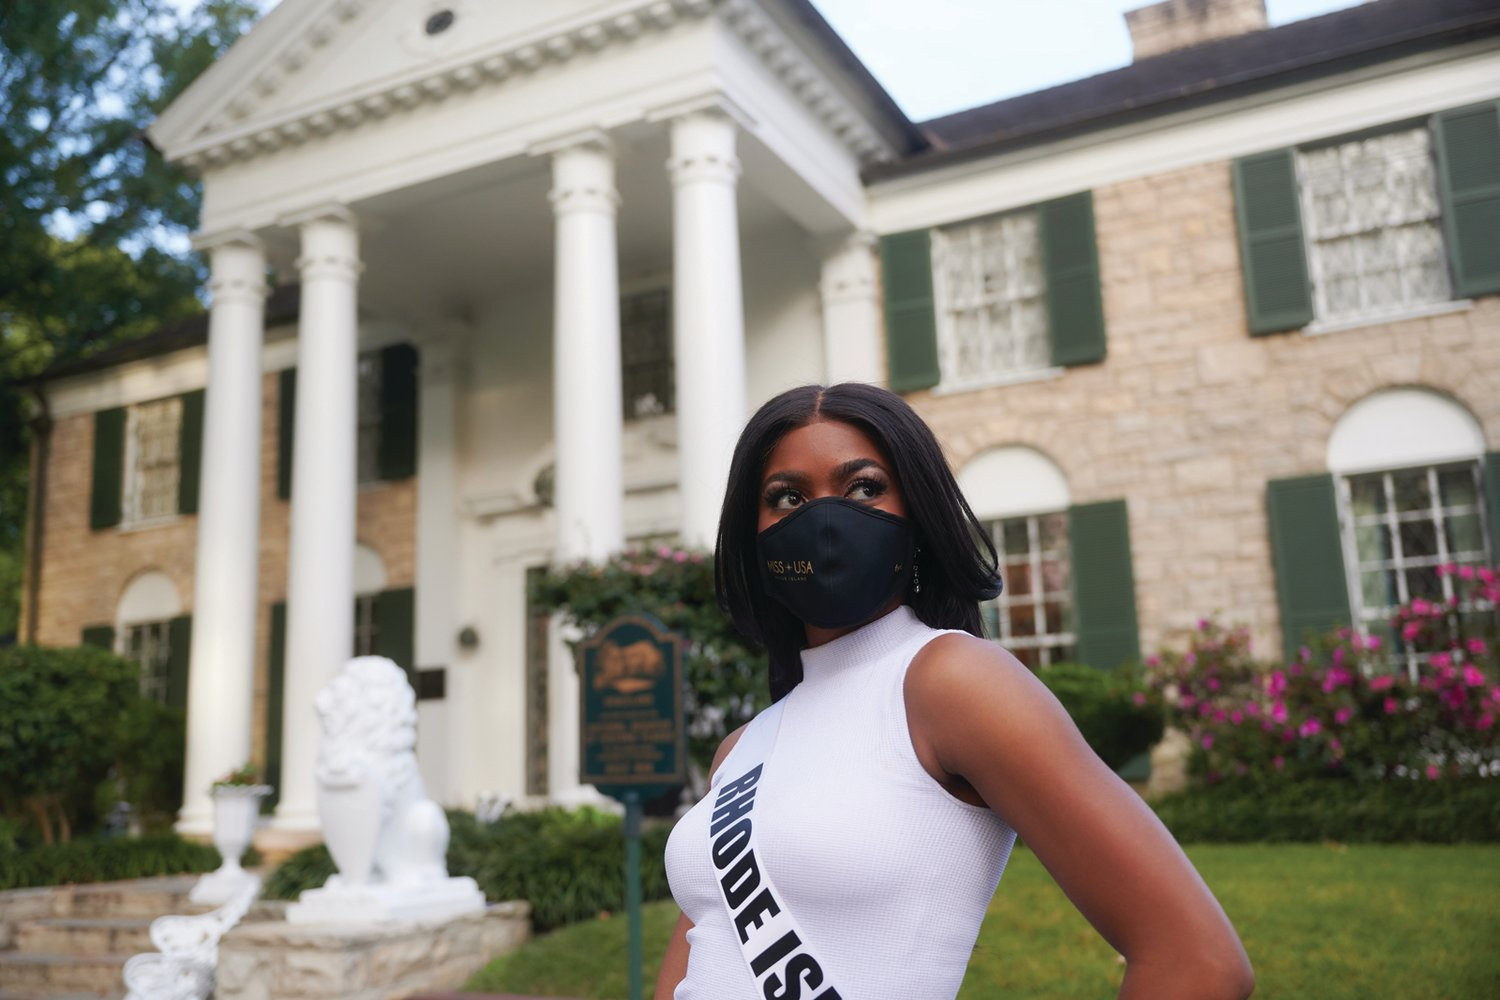 Jonet Nichelle, Miss Rhode Island USA 2020, during a socially distant, COVID-compliant shoot at Graceland in Memphis, Tennessee on Wednesday, November 4. The Miss USA contestants are filming, rehearsing and preparing to compete for the Miss USA crown at iconic Graceland. Tune in to the 2020 MISS USA® Competition at 8pm EST on November 9, live on FYI from Graceland to see who will become the next Miss USA. HO/ The Miss Universe Organization.